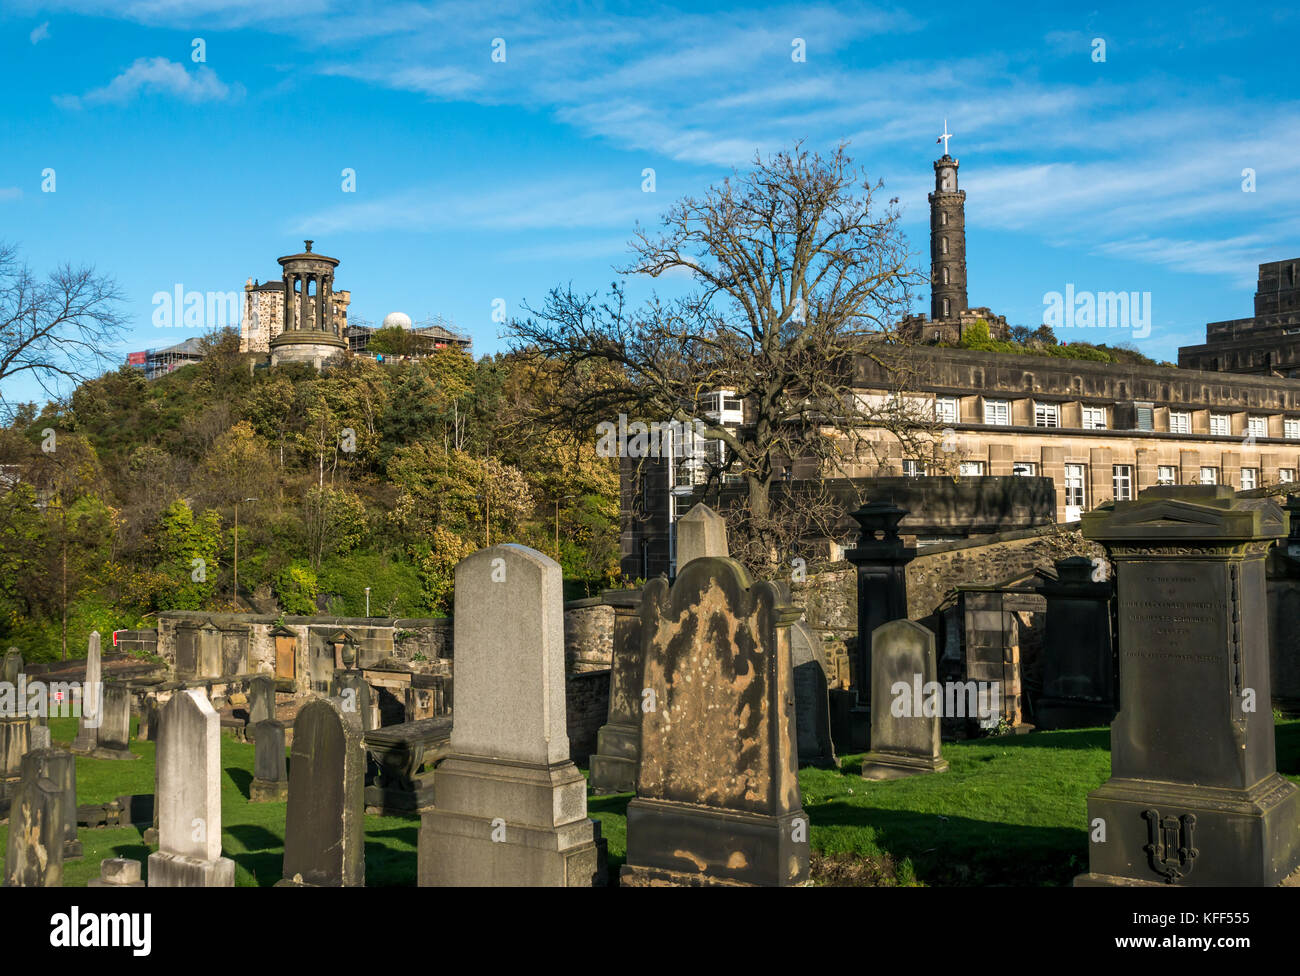 Old gravestones in Old Calton burying ground cemetery Edinburgh, Scotland and view to Calton Hill, with Nelson column Stock Photo